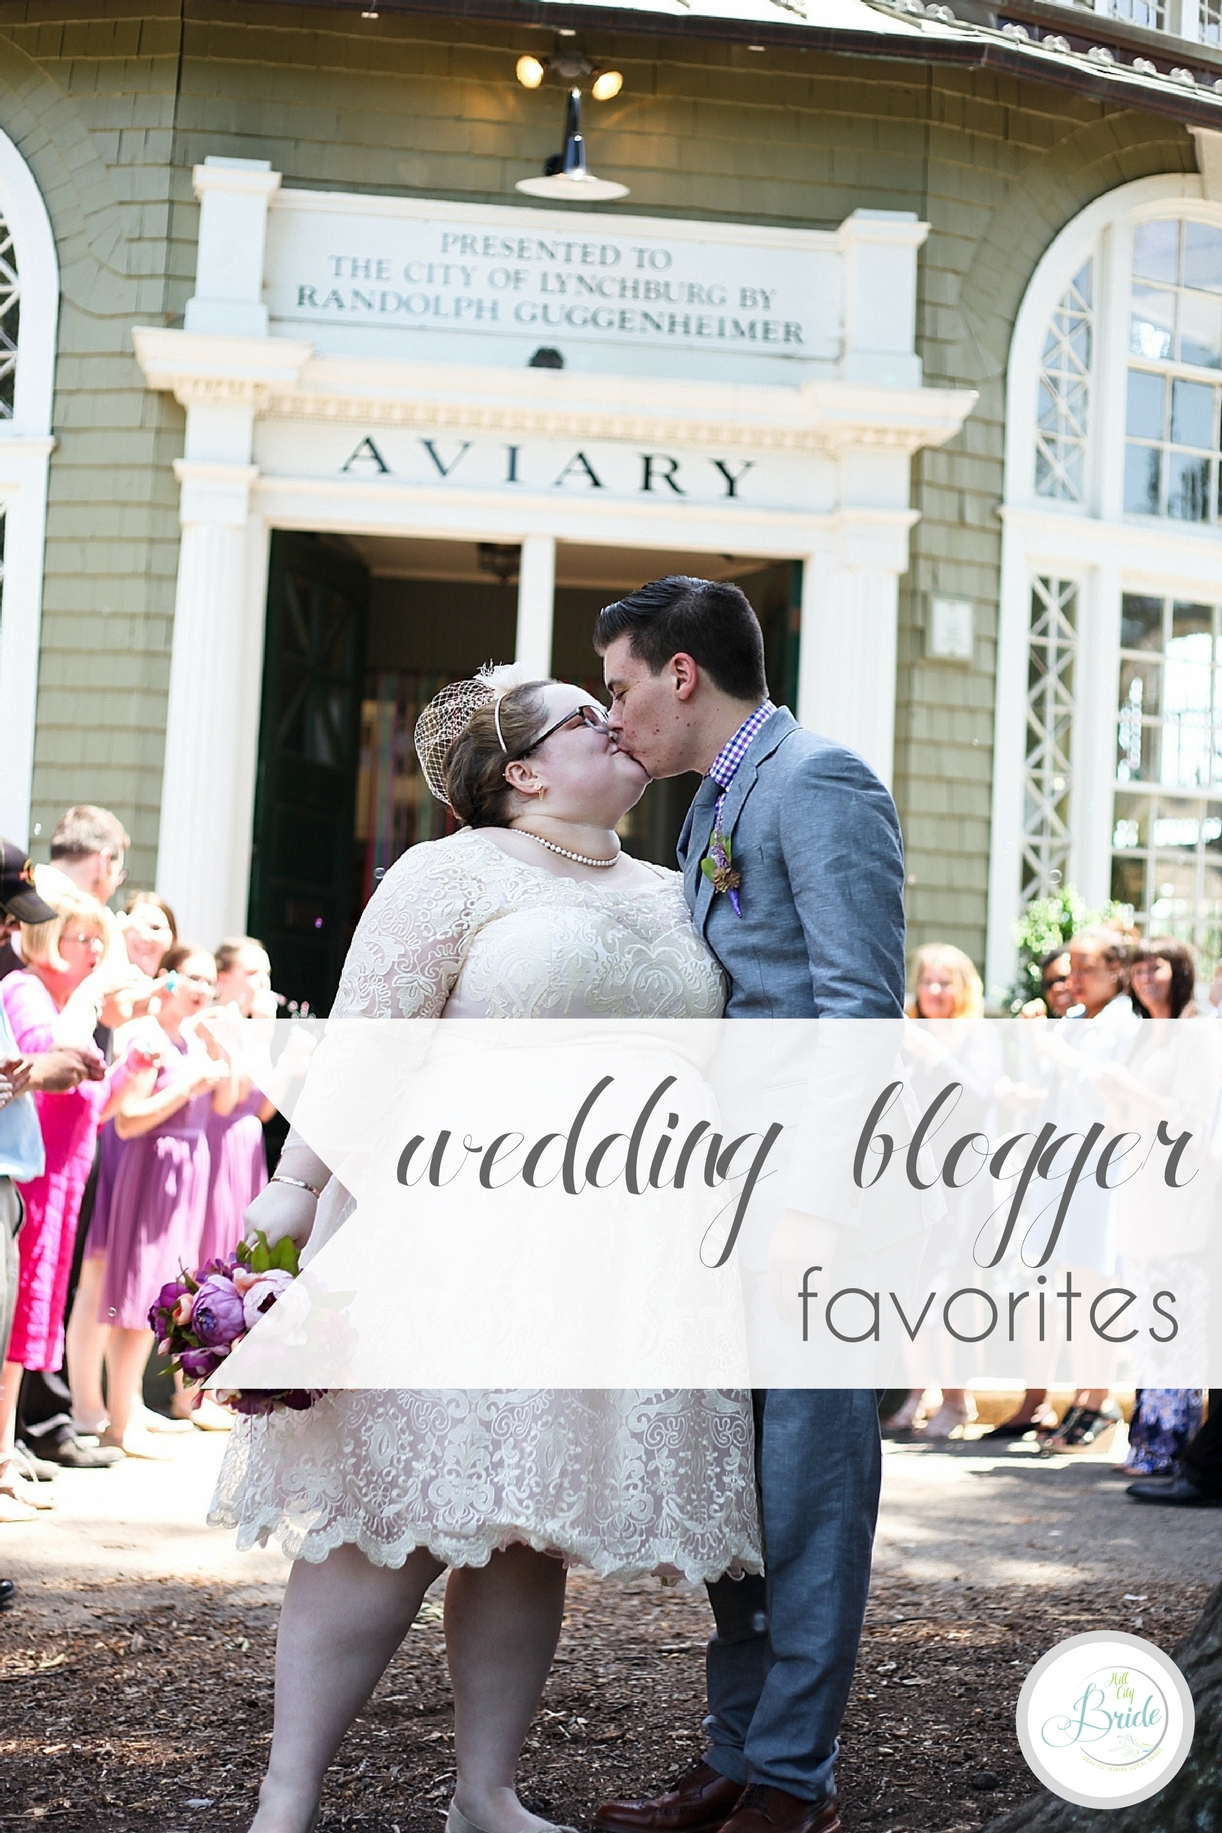 Favorites from wedding bloggers around the globe hill city bride favorites from wedding bloggers hill city bride virginia wedding blog junglespirit Image collections